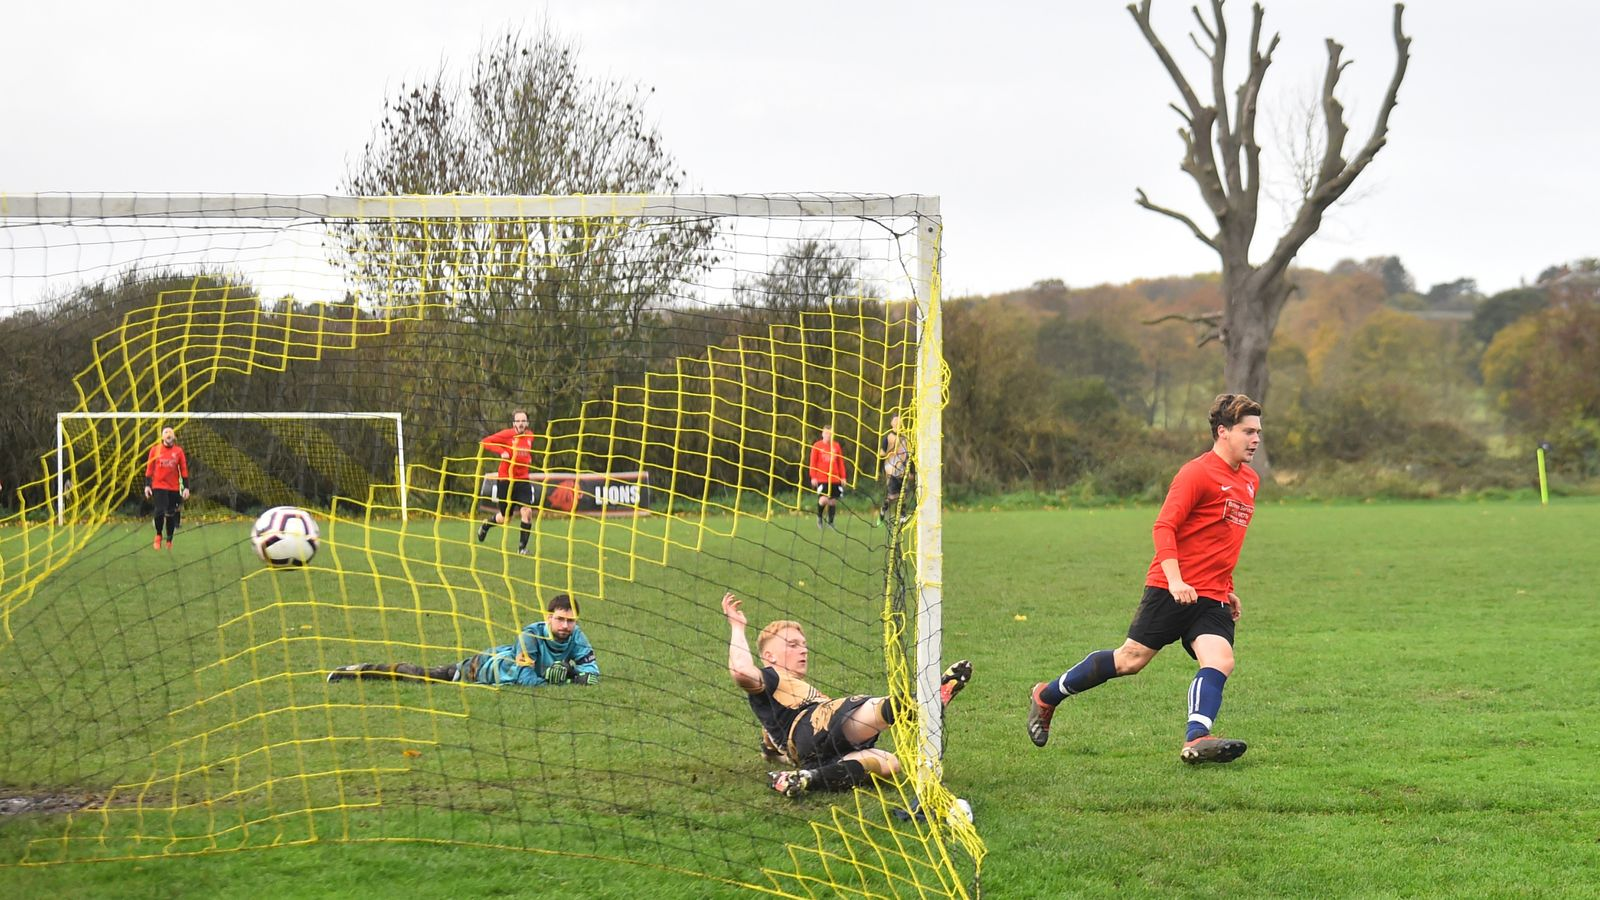 Outdoor sports resume as England's